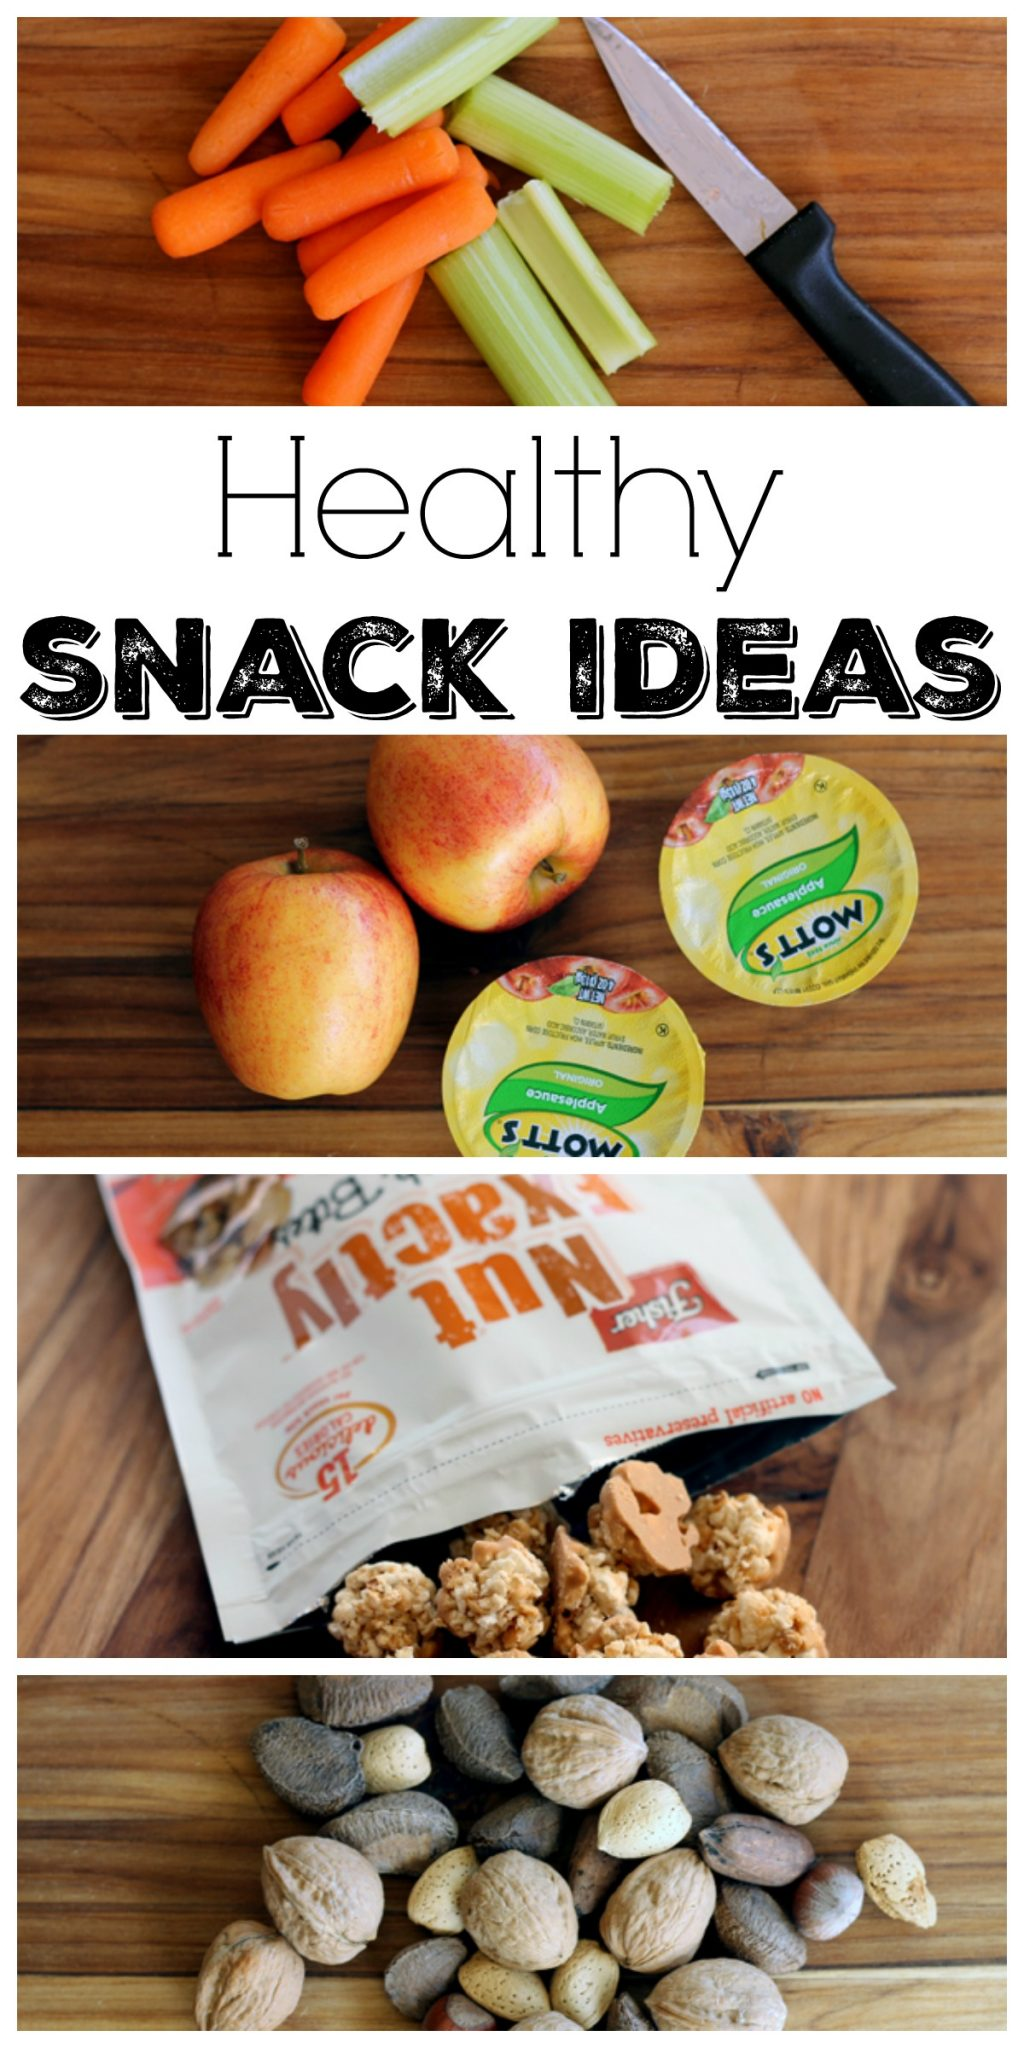 You Will Love These Healthy Snack Ideas For Your Family